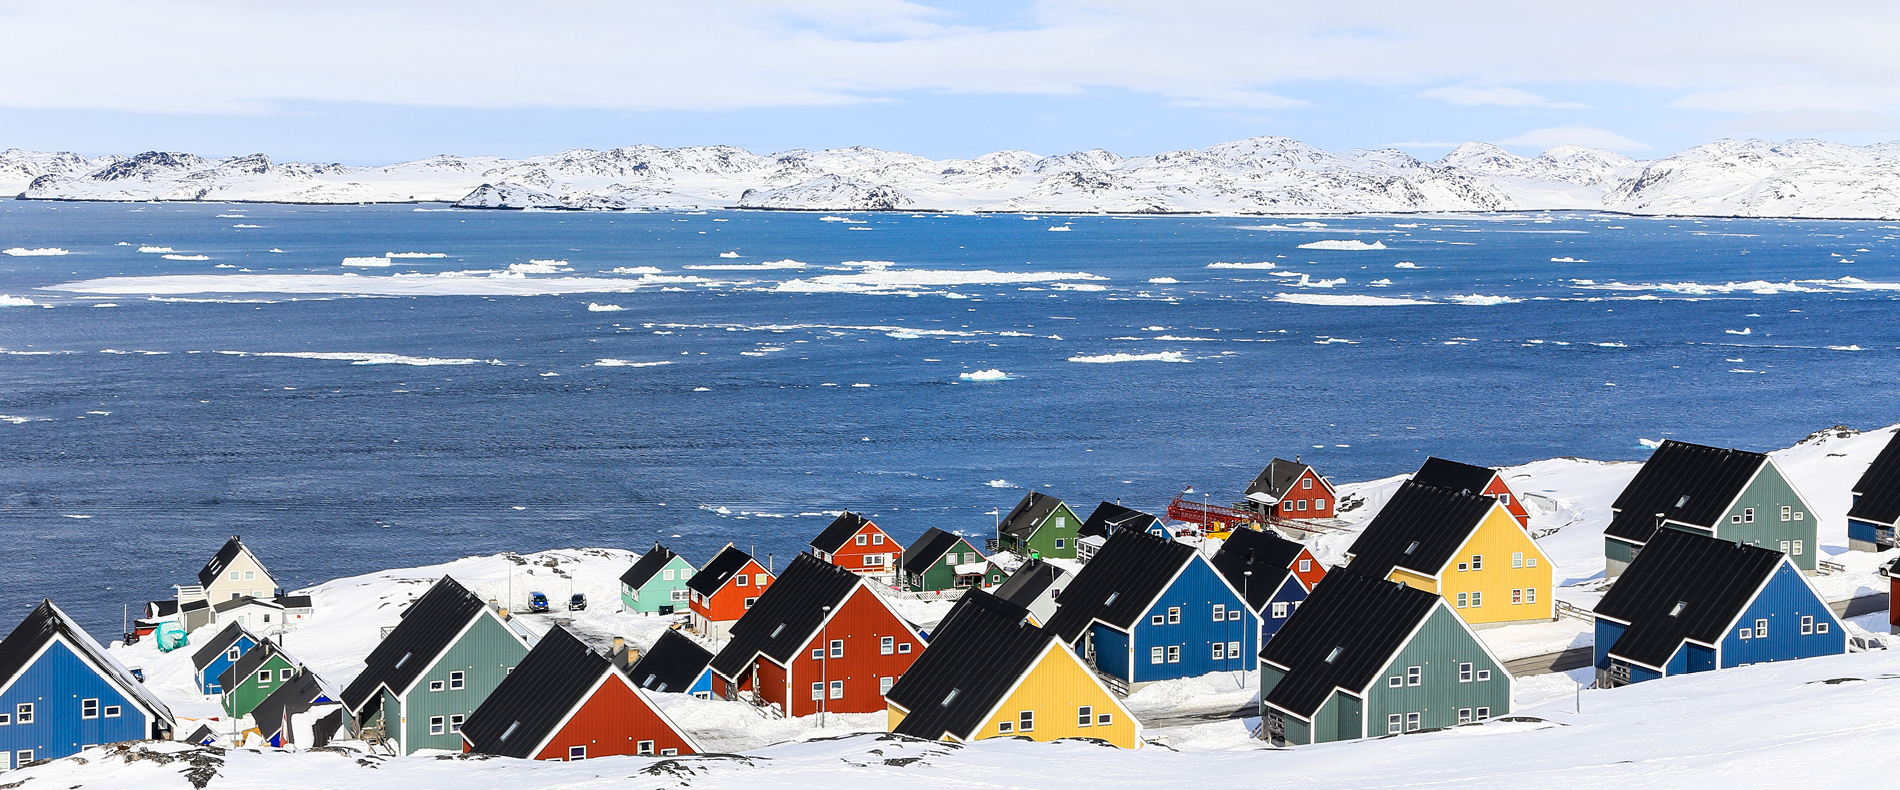 colourful houses surrounded by snow next to a body of water seen from a luxury Arctic cruise